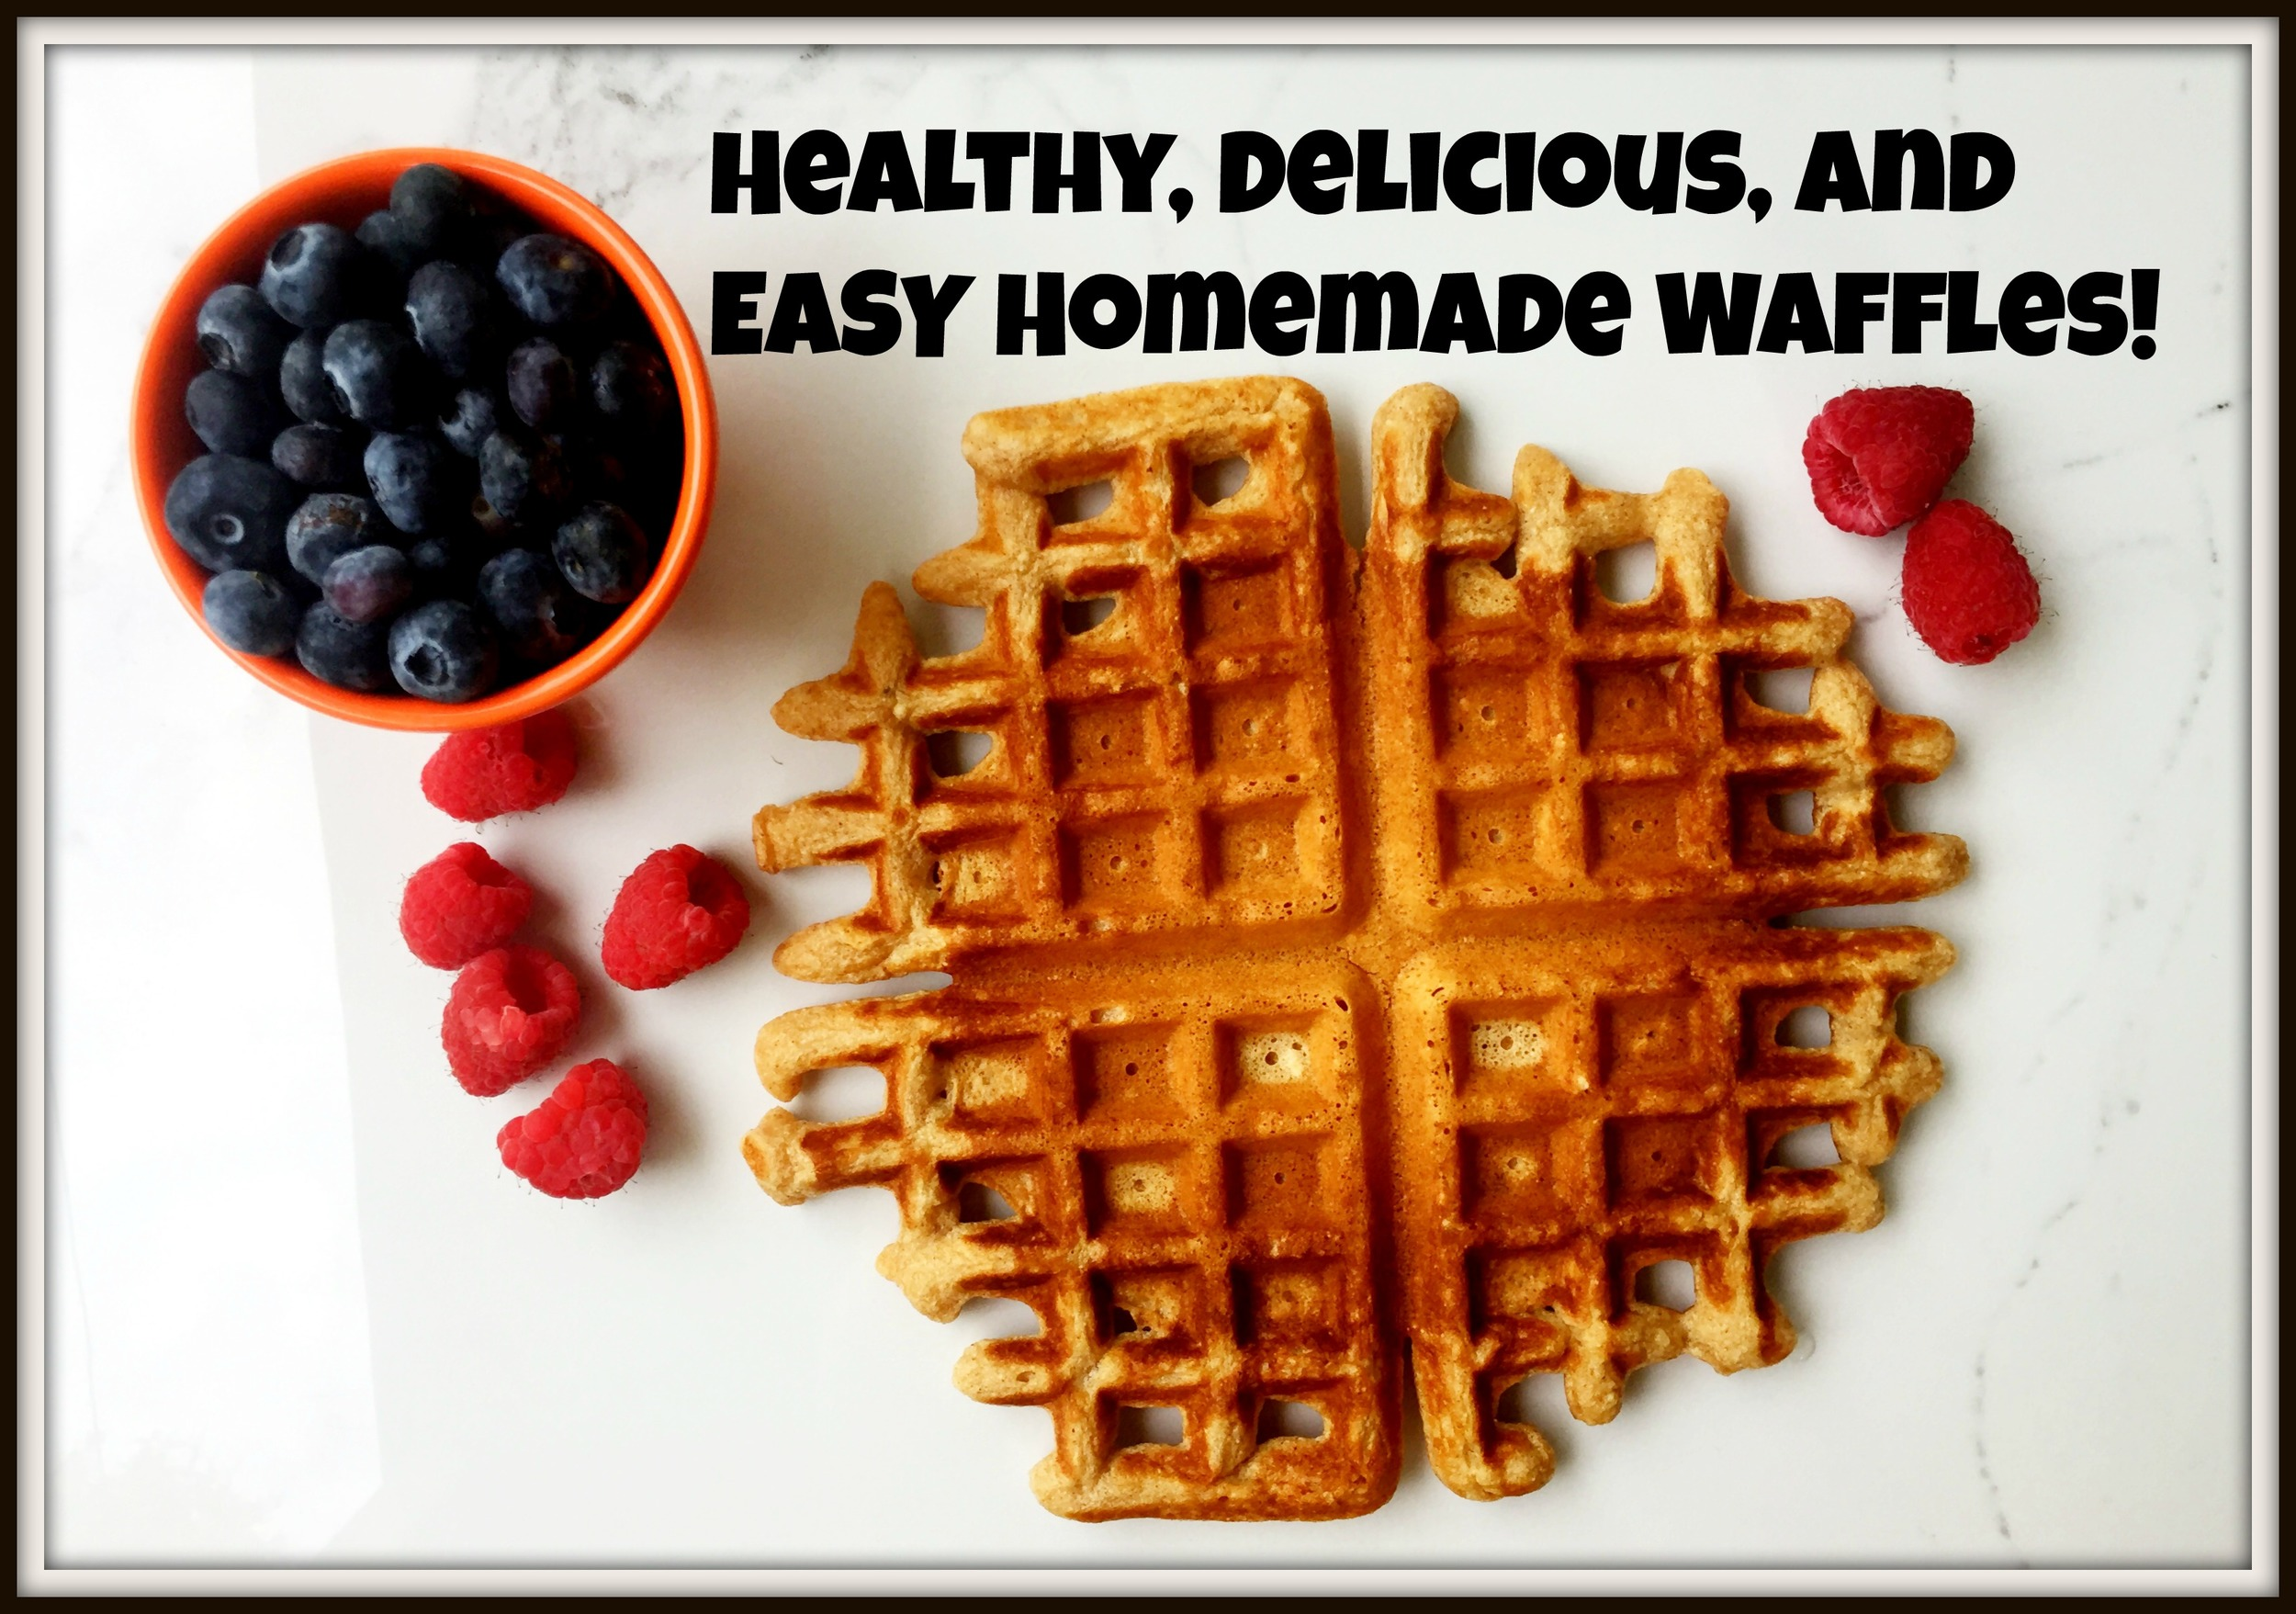 Looking for a healthy waffle recipe that still is flavorful, fluffy, and delicious? Look no further! This recipe is so easy to make. It's my new favorite Sunday breakfast!